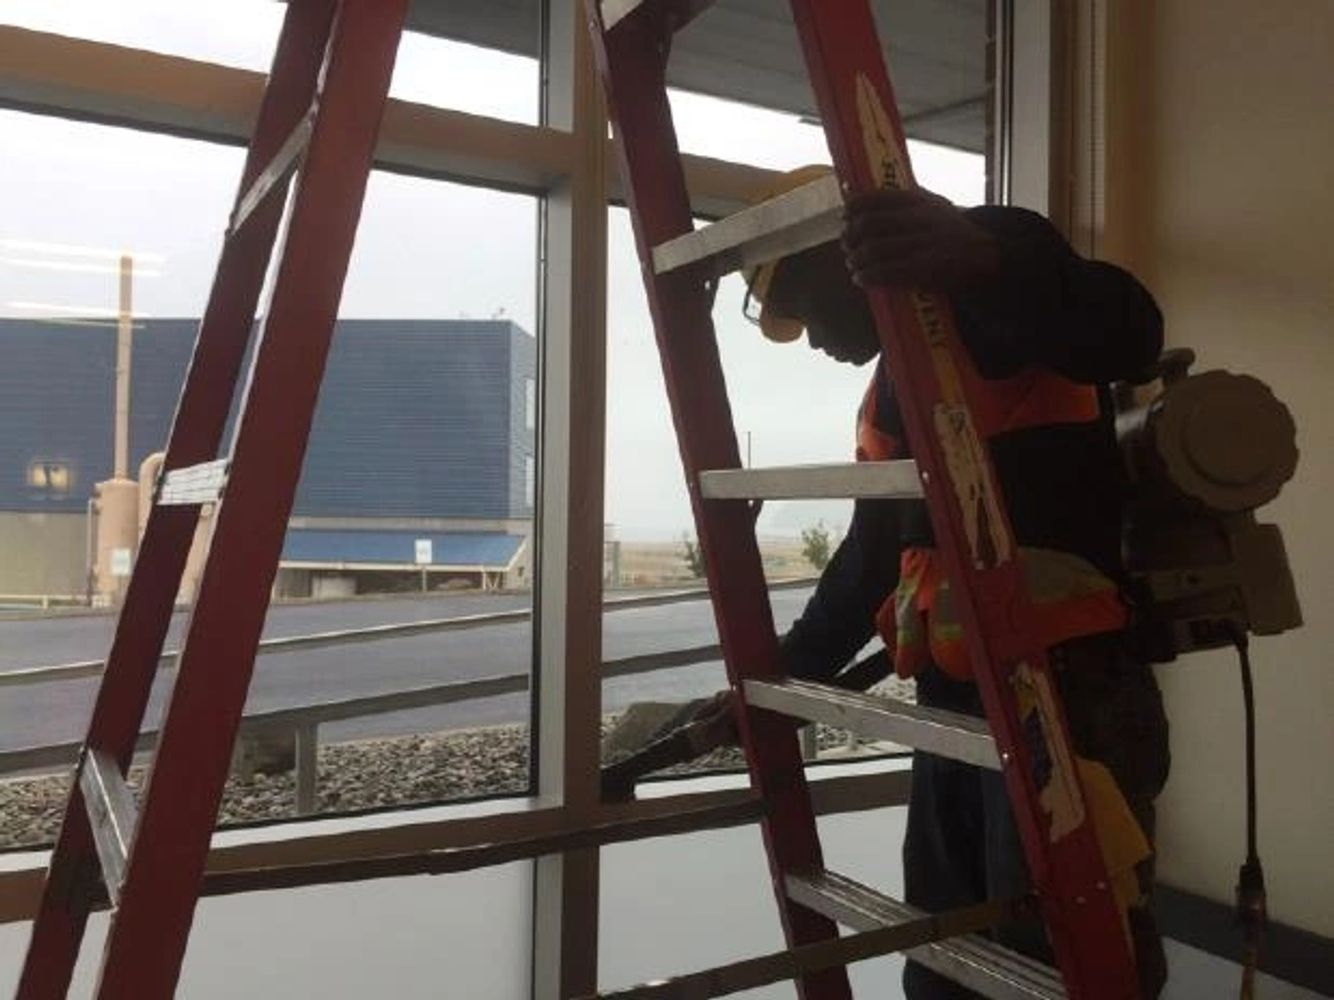 An image of an Accountable employee doing construction cleaning with a shock vacuum on a window sill